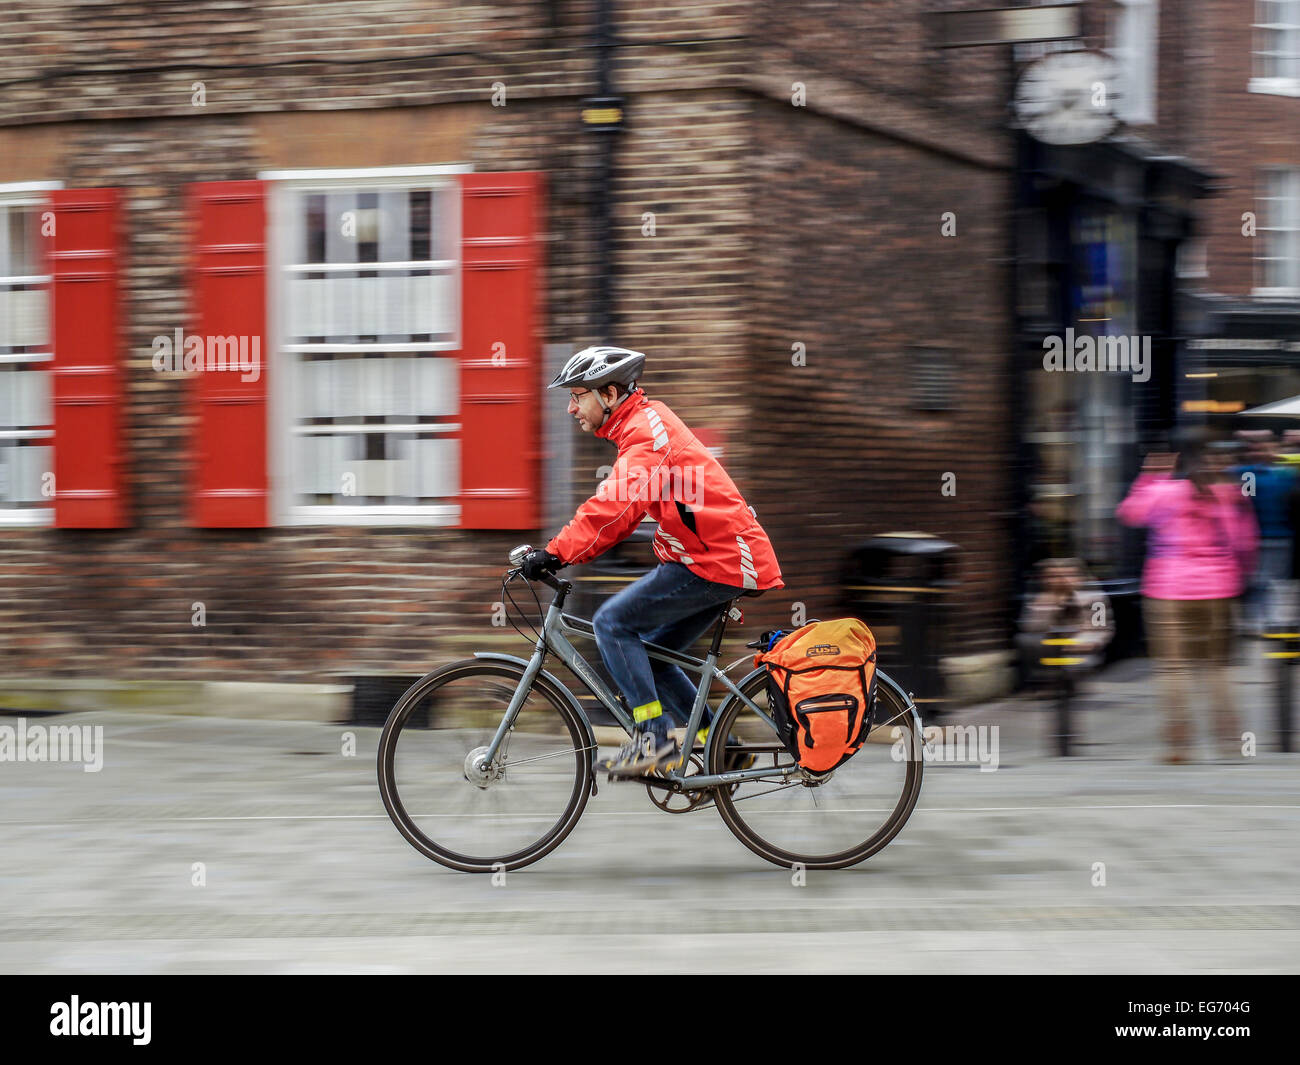 Man in orange jacket a commuter commuting riding grey gray bike cycle bicycle with motion blur of background. - Stock Image